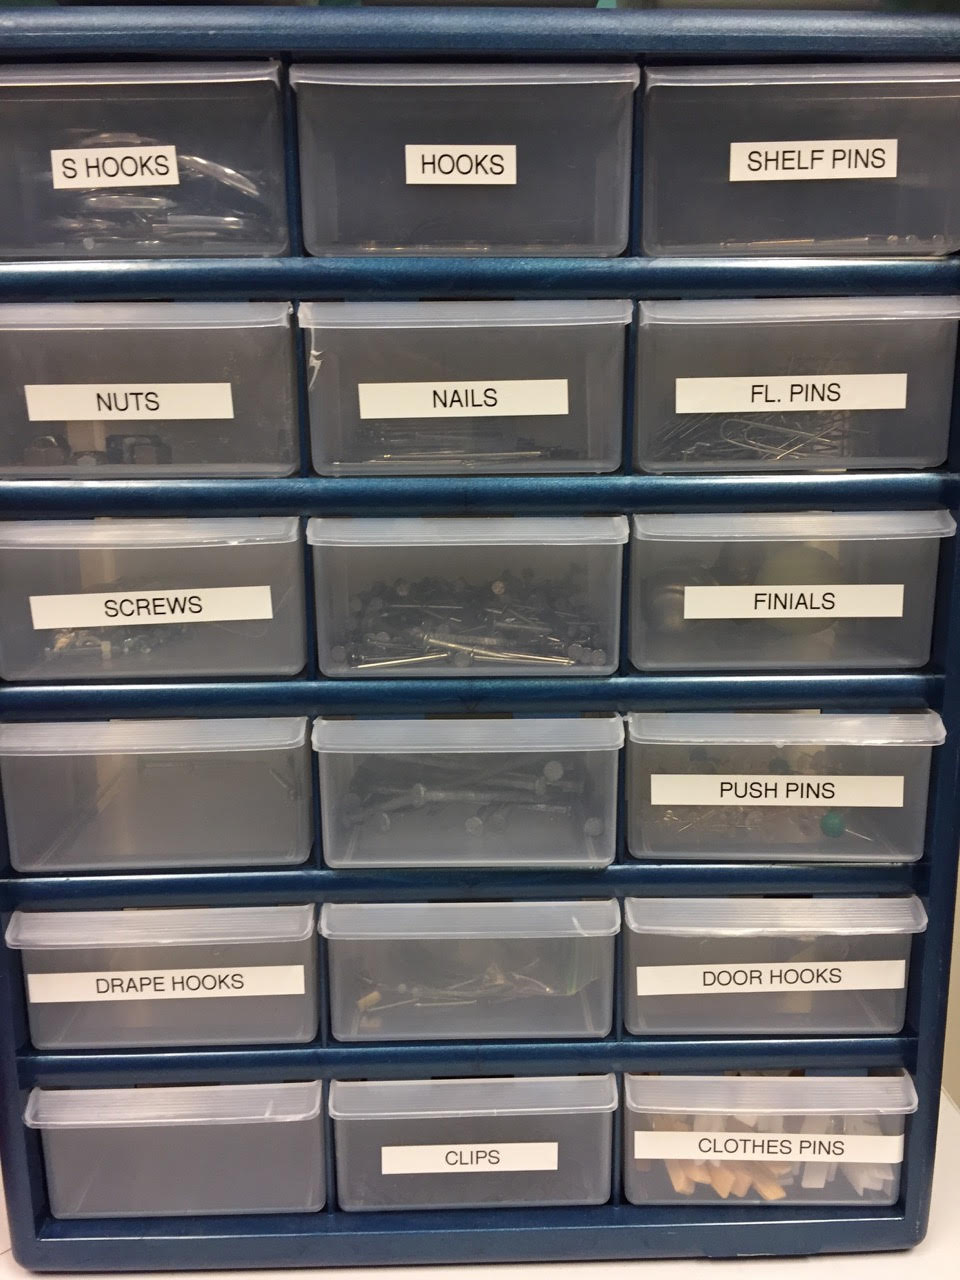 Even hardware has a place! Get a storage unit like this and label all the drawers.